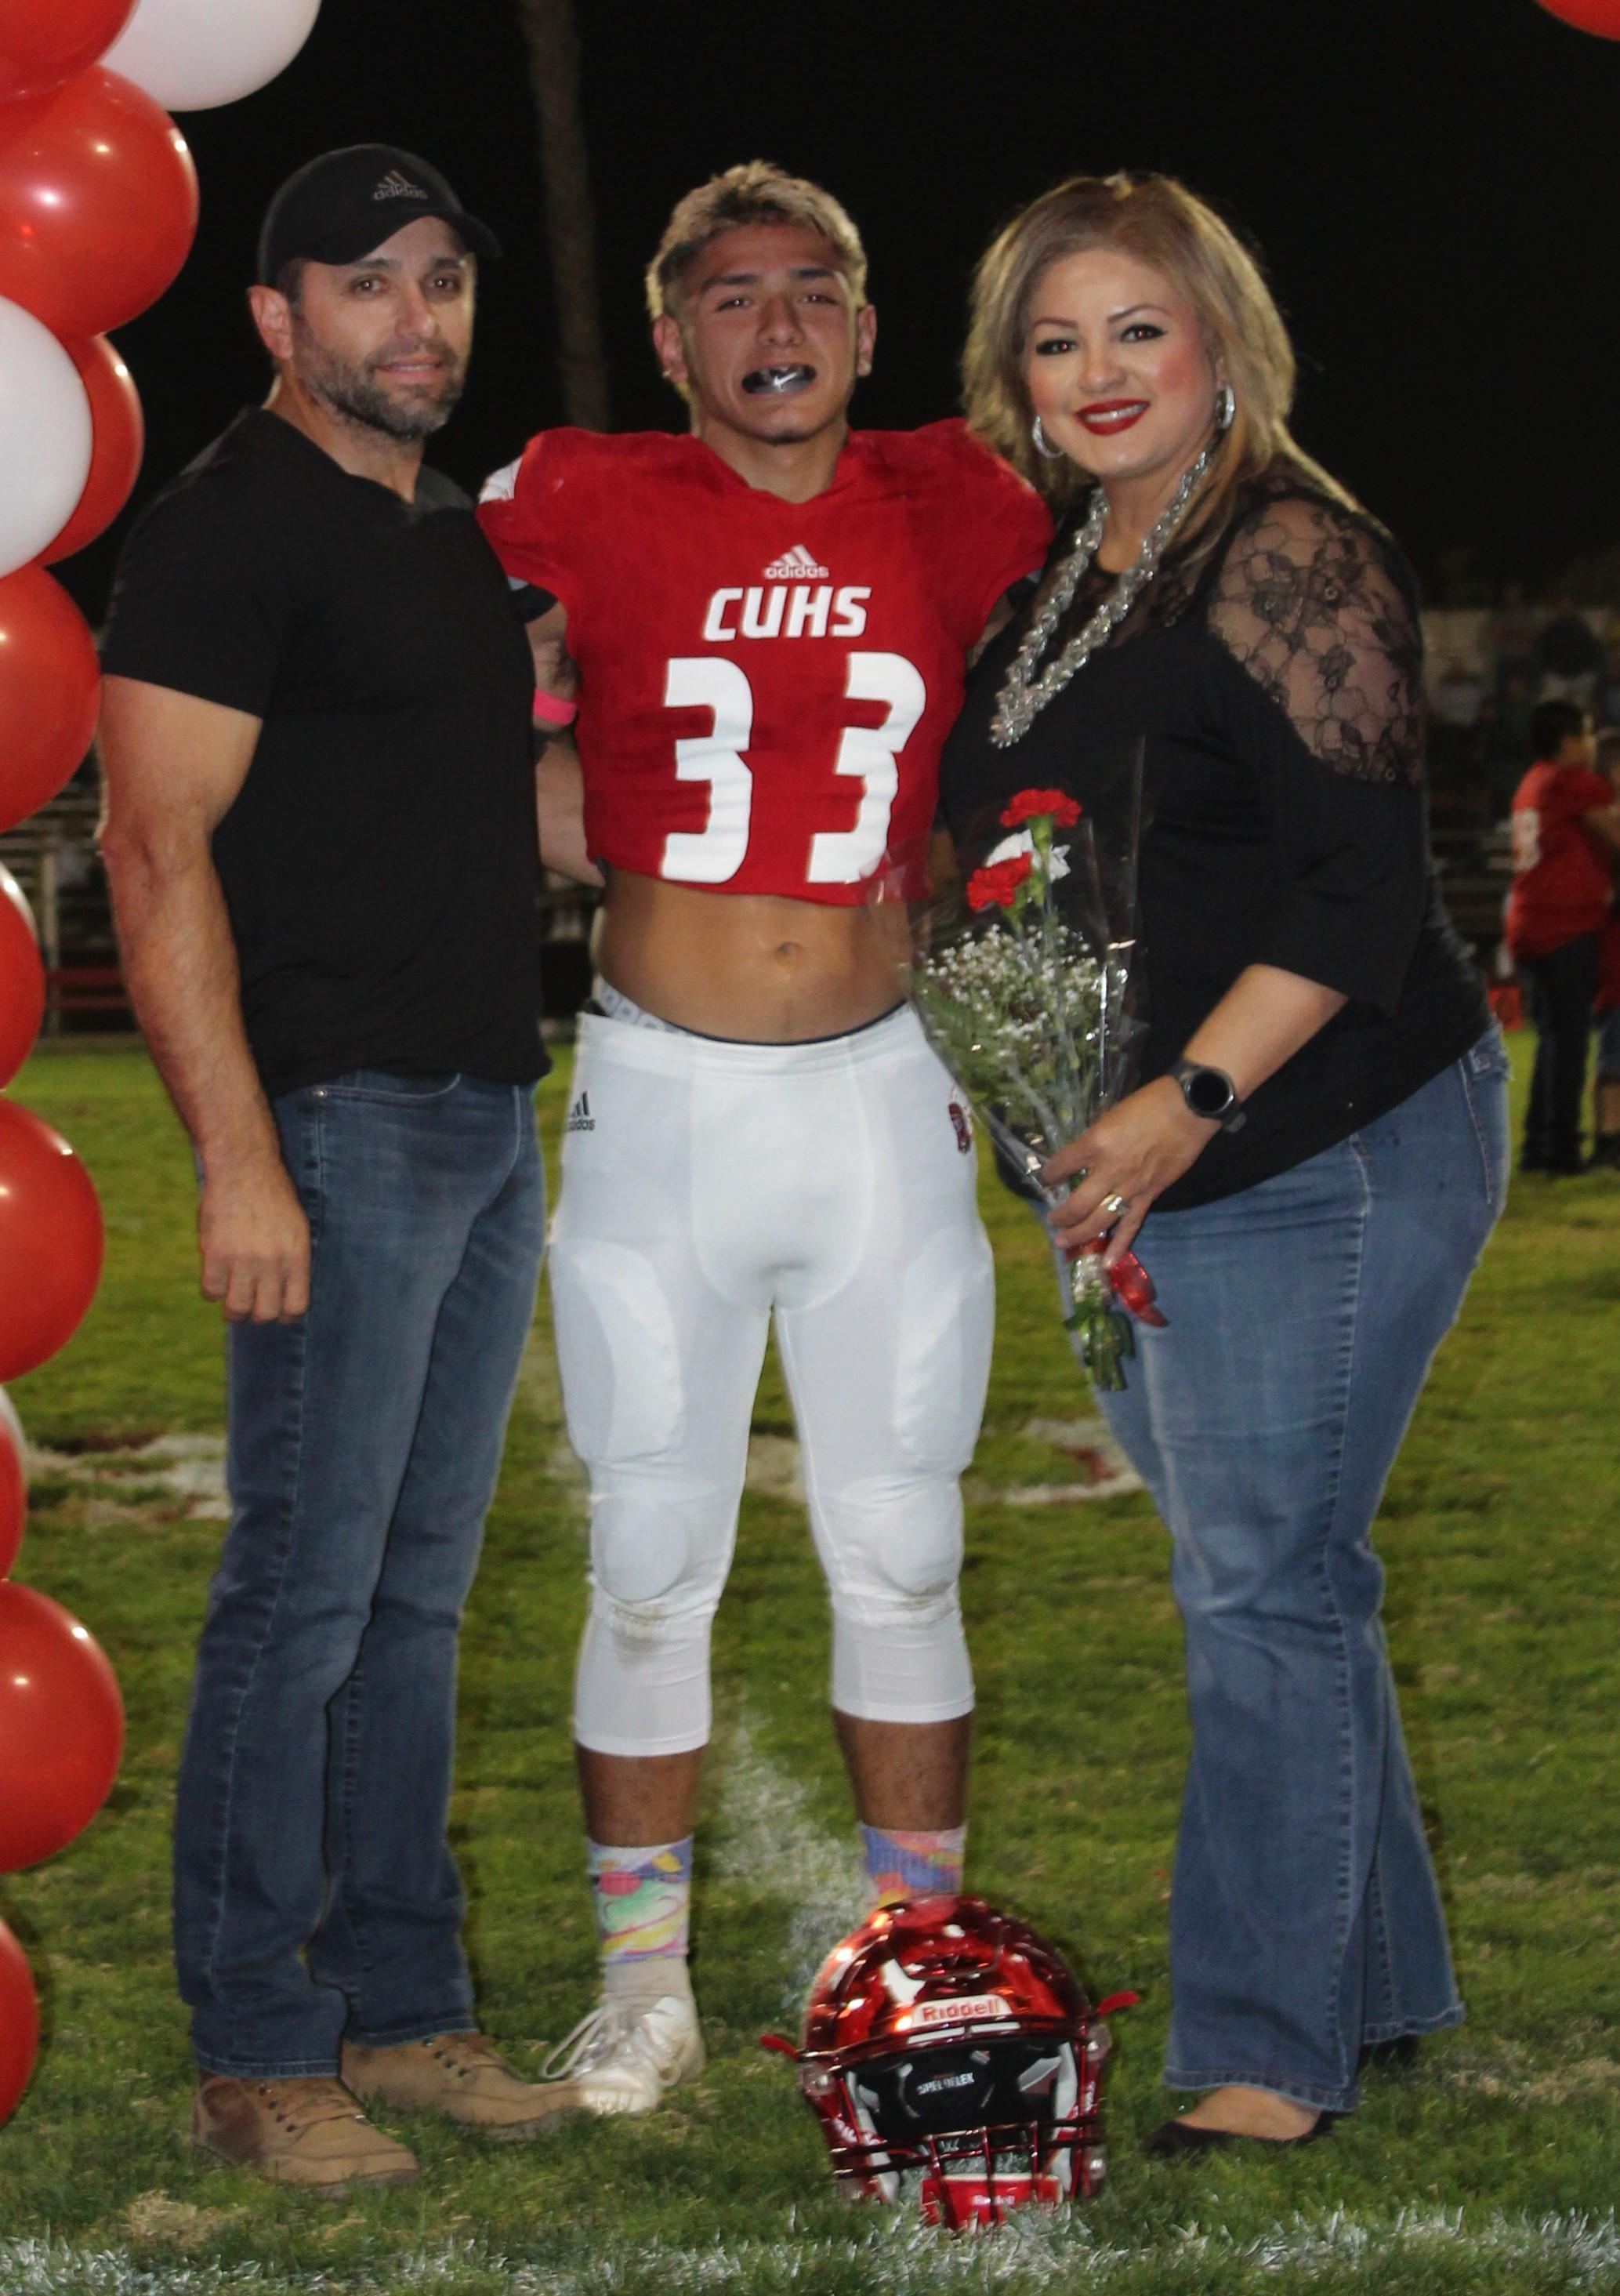 Luciano Manzo and his supporters at Senior Night.